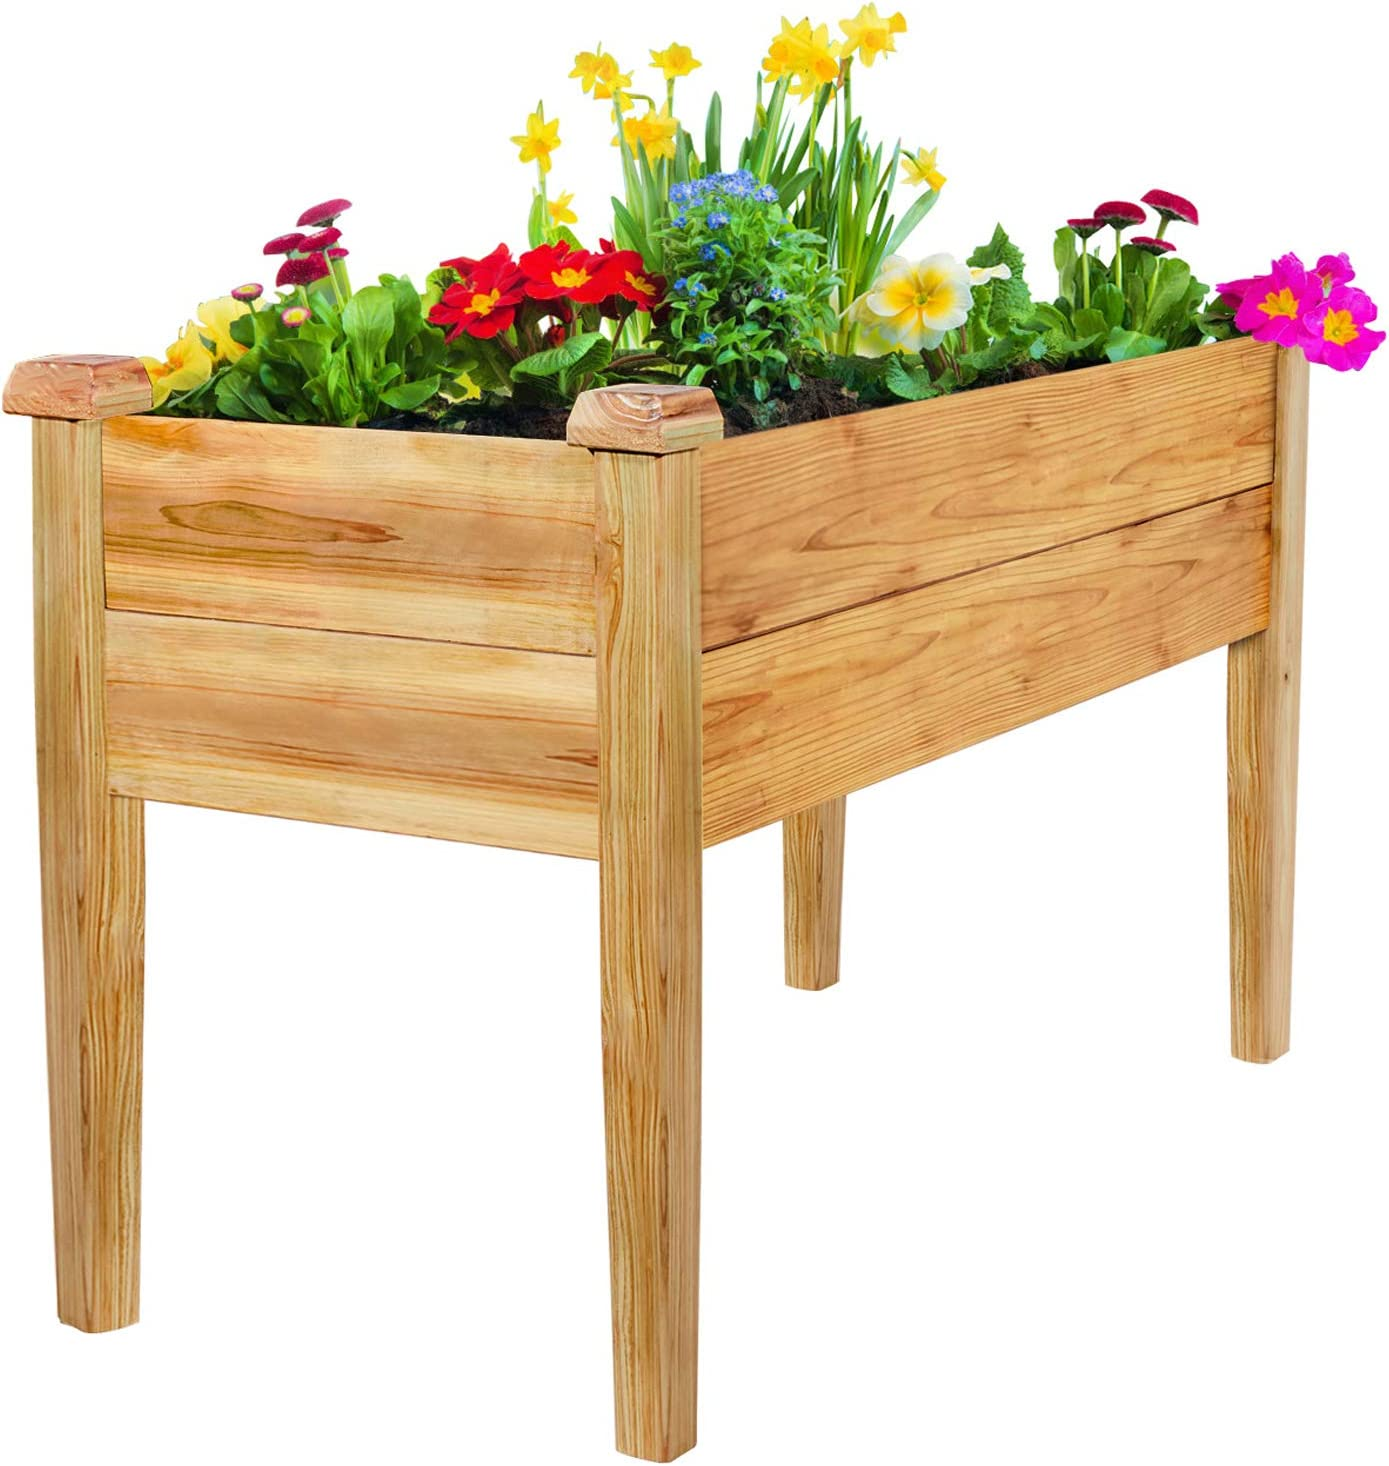 GADI Wood Raised Garden Bed, 100% Rot-Resistant Elevated Wood Planter Box Kit for Backyard, Patio, Balcony, Natural (Nature)